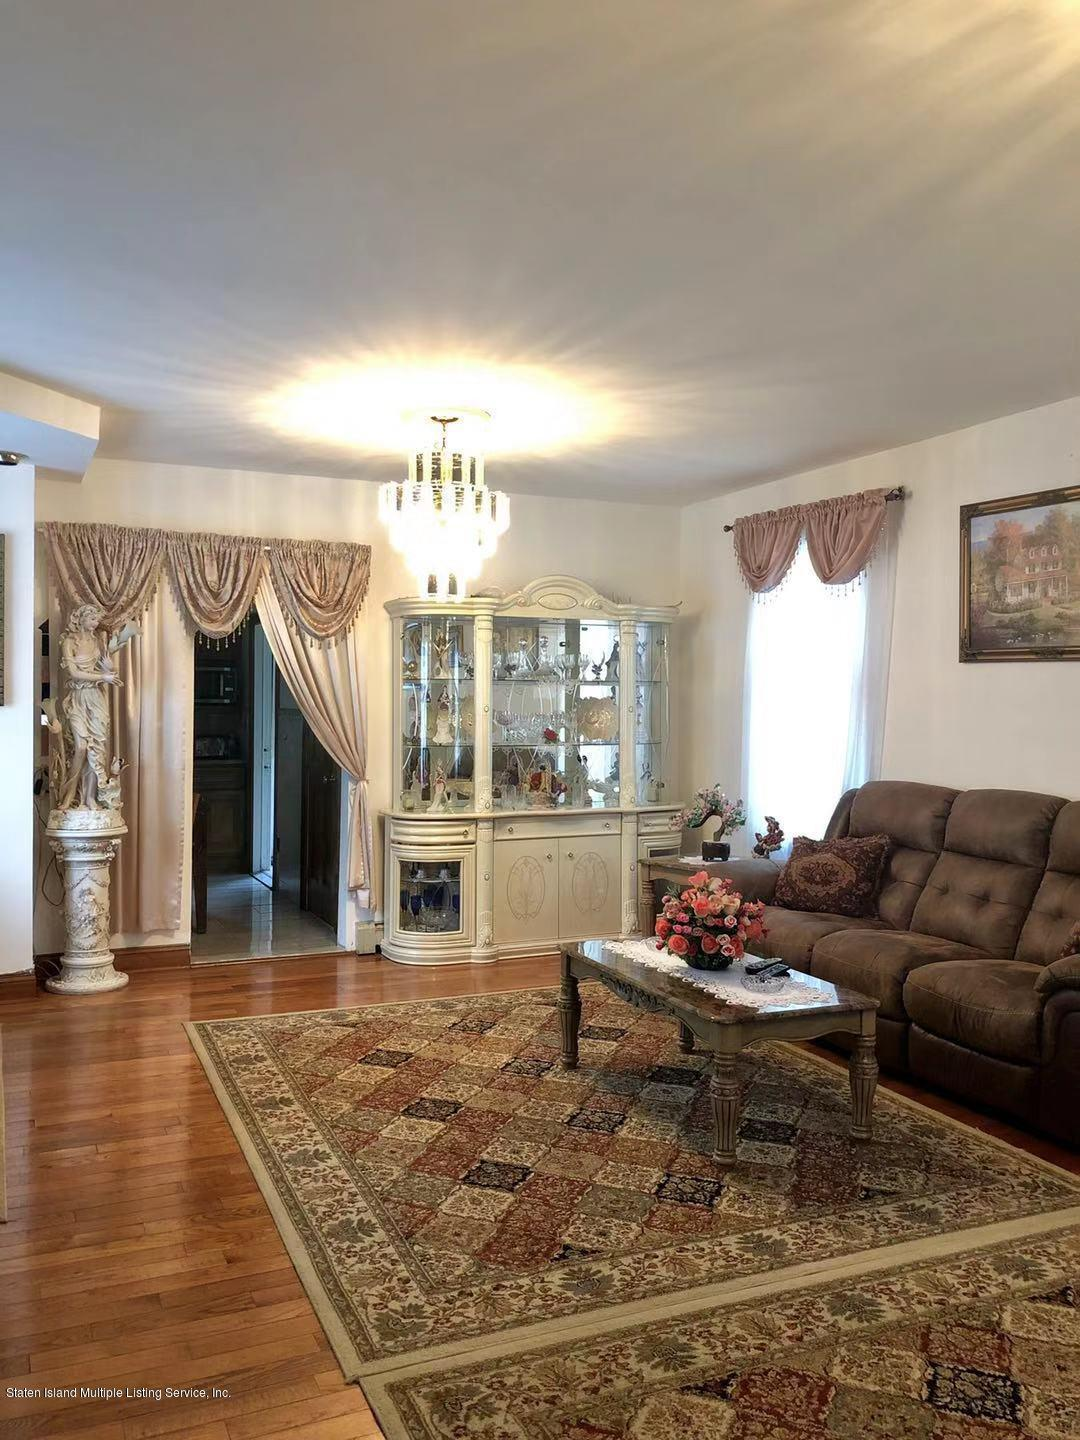 Single Family - Detached 1123 Forest Avenue  Staten Island, NY 10310, MLS-1131376-13